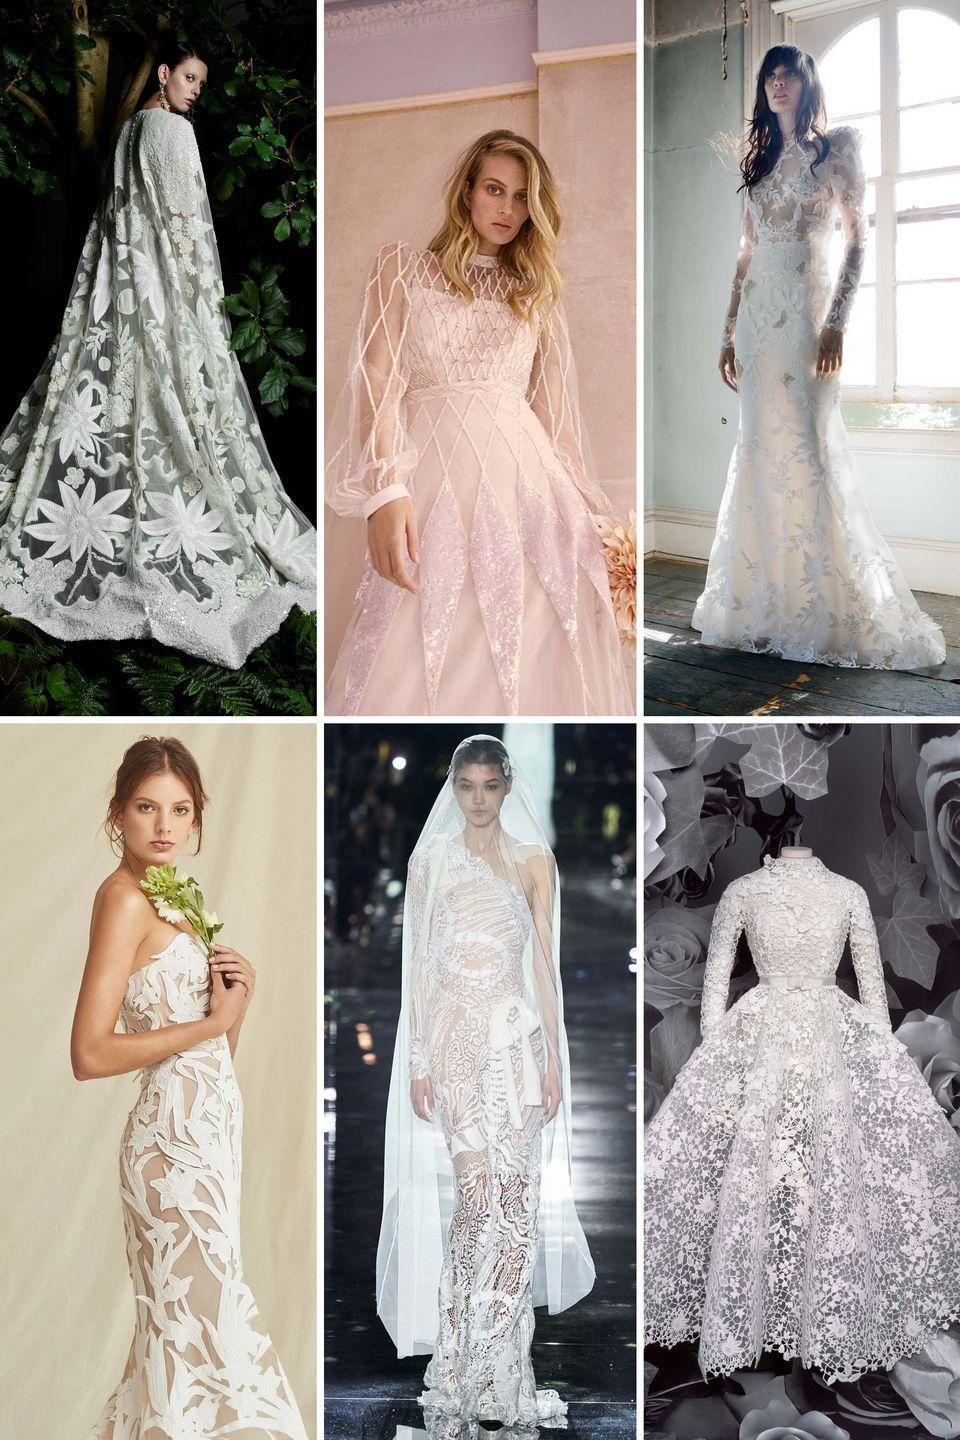 <p>Lace is bridal's biggest mainstay, and to reinvent it's traditional wheel proves challenging—but from laser-cut laces and graphic embroidery to statement motifs and all the re-embroidered and three-dimensional options in between, there were countless new ways to wear lace in the latest collections.</p><p>Whether you're after a slim fit, an A-line, or a ball gown, there's a new take on lace that's far beyond basic Chantilly to suit any style. Lean into all the new laces—from Tom Ford's patchwork to Dior's formal riff on Guipure—and consider how they'll best suit your wedding's setting. Nature-inspired and floral laces feel outdoorsy and effortless, while more graphic options feel like a modern take on metropolitan wedding dressing. Bring the feel of your gown into your veil for an even larger impact—but when you do, be sure the look still feels authentic and soft, rather than overwhelming.</p><p><em>Clockwise from left: Naeem Khan Bridal Fall 2021; Temperley London Bridal Fall 2021; Elizabeth Fillmore Bridal Fall 2021; </em><em>Oscar de la Renta Bridal Spring 2021; </em><em>Tom Ford Fall 2020; Christian Dior Fall 2020 Haute Couture.</em></p>